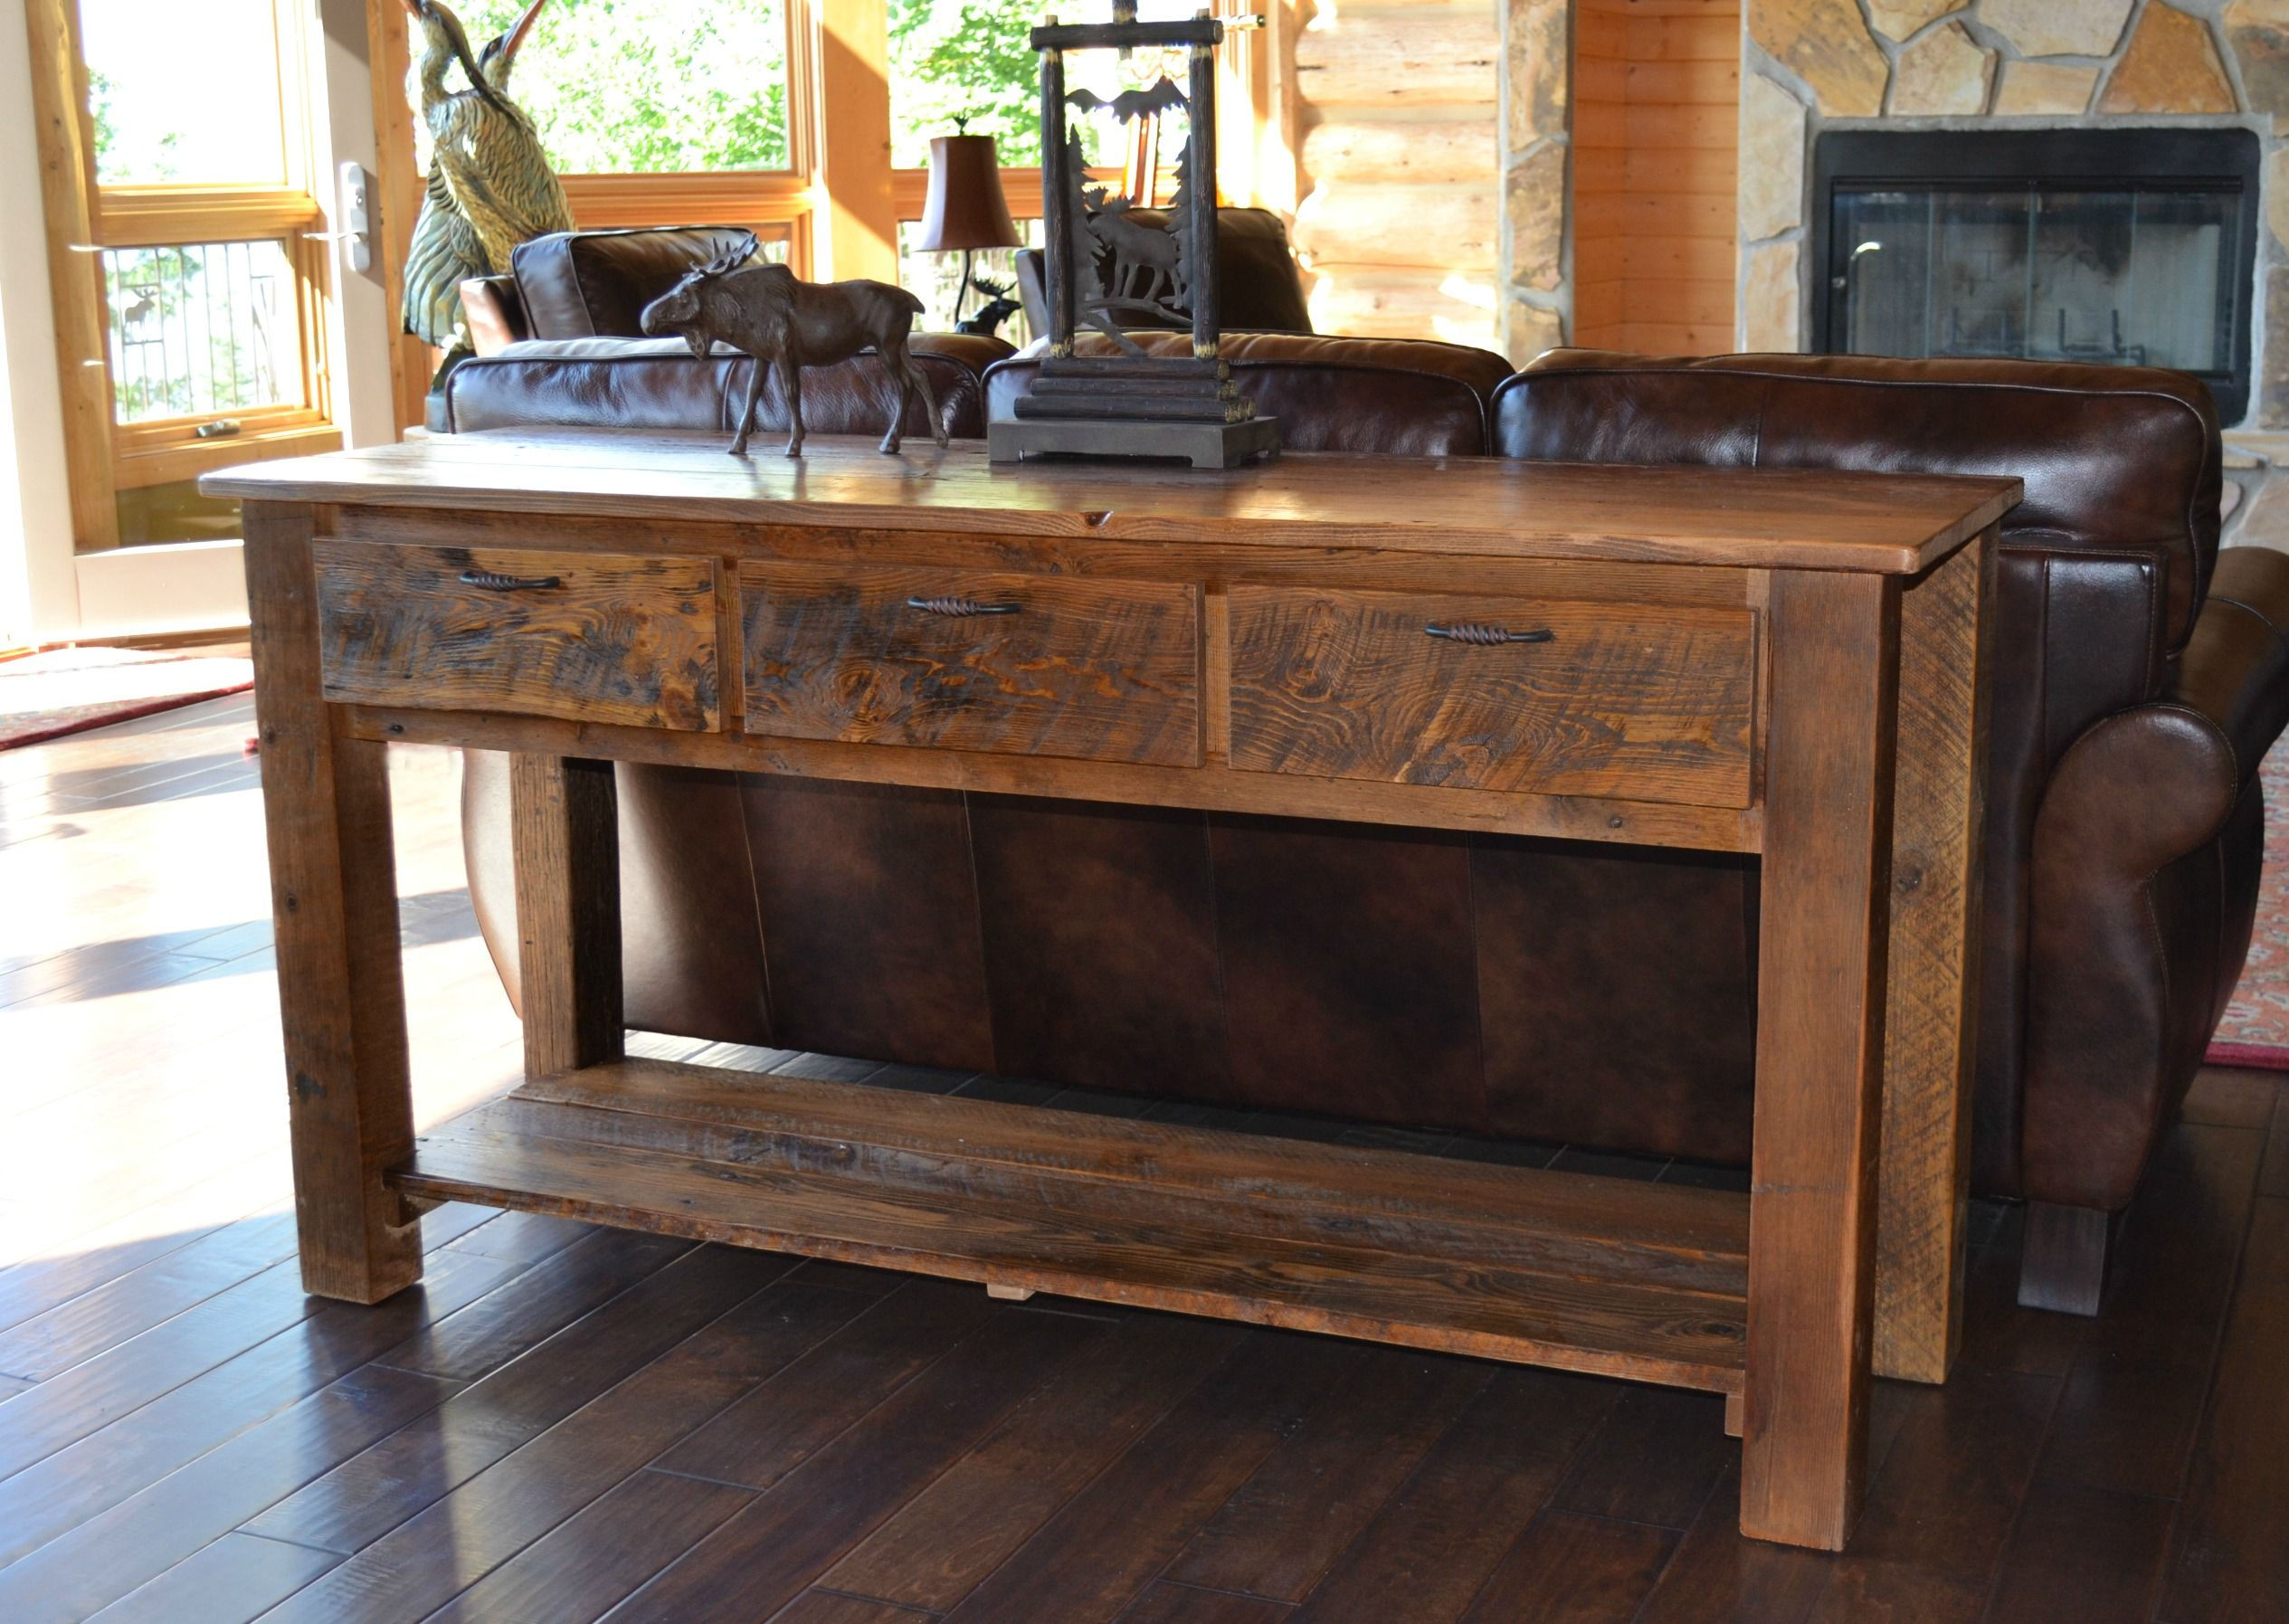 How to make a sofa table from 1 x 6 lumber - Rustic Hand Crafted End Tables Coffee Tables And Sofa Tables From Rustic Furniture Mall Featuring Cedar Log Reclaimed Barn Wood Distressed Pine